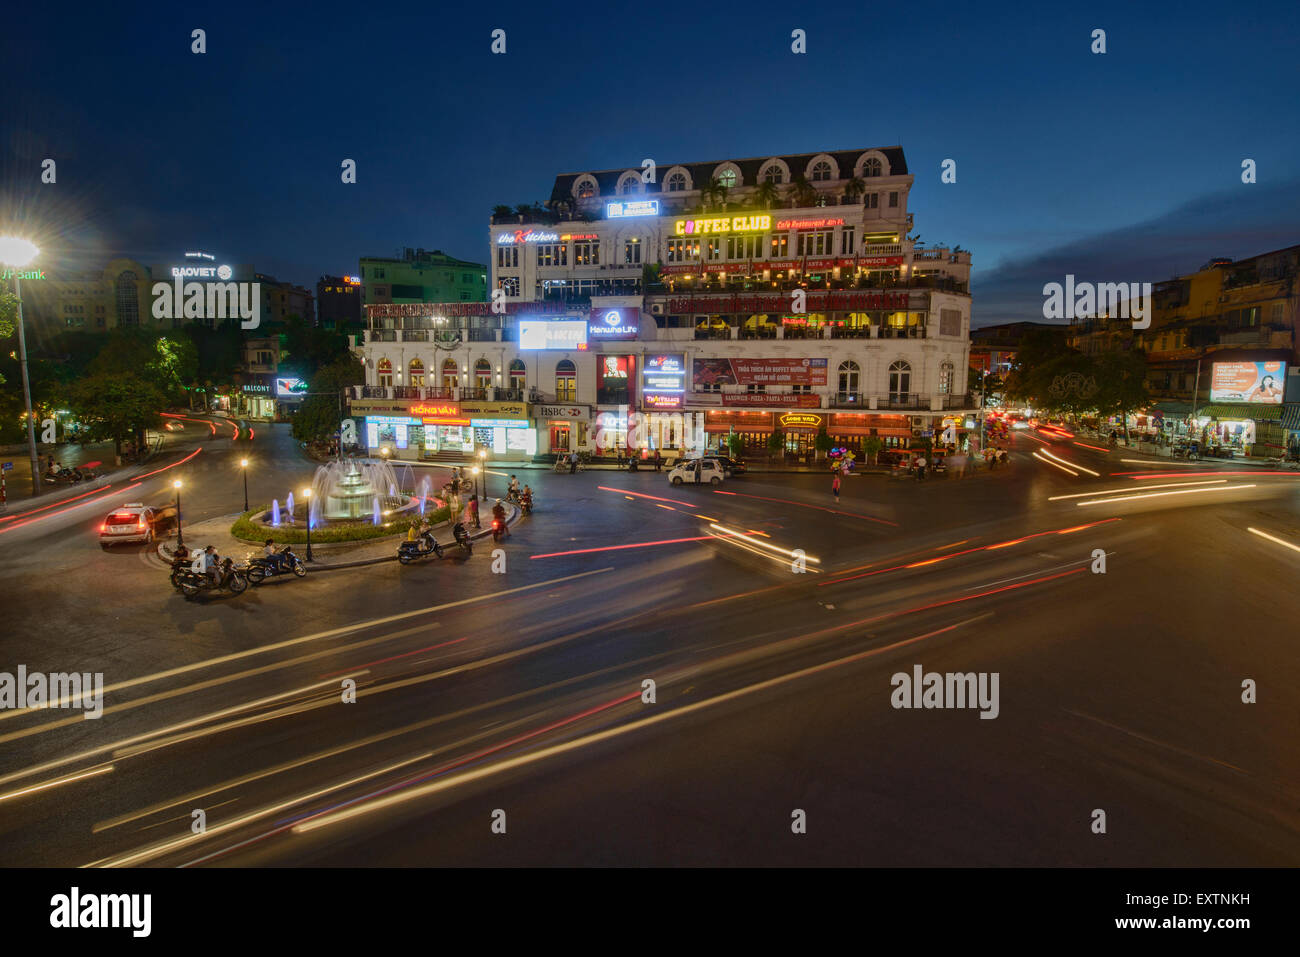 Scenes of Hanoi by night, Vietnam - Stock Image